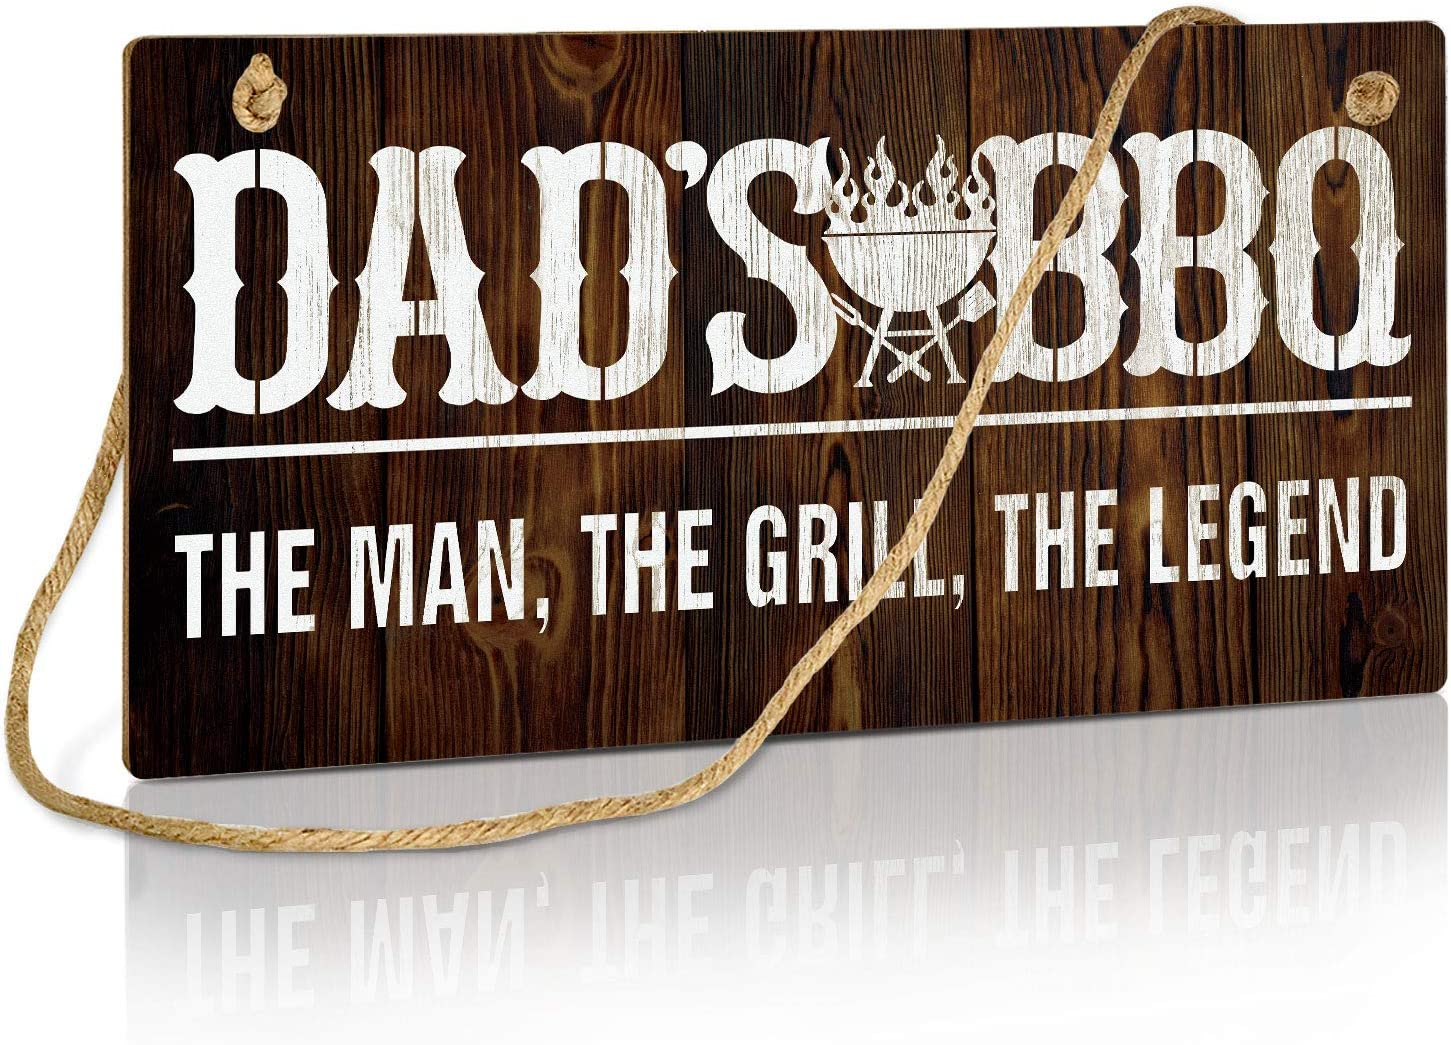 Putuo Decor Dad's BBQ Decorations, Rustic Summer Party Sign for Man Cave, Workshop, Kitchen, Gift for Dad, 10x5 Inches Hanging Wall Plaque - The Man, The Grill, The Legend